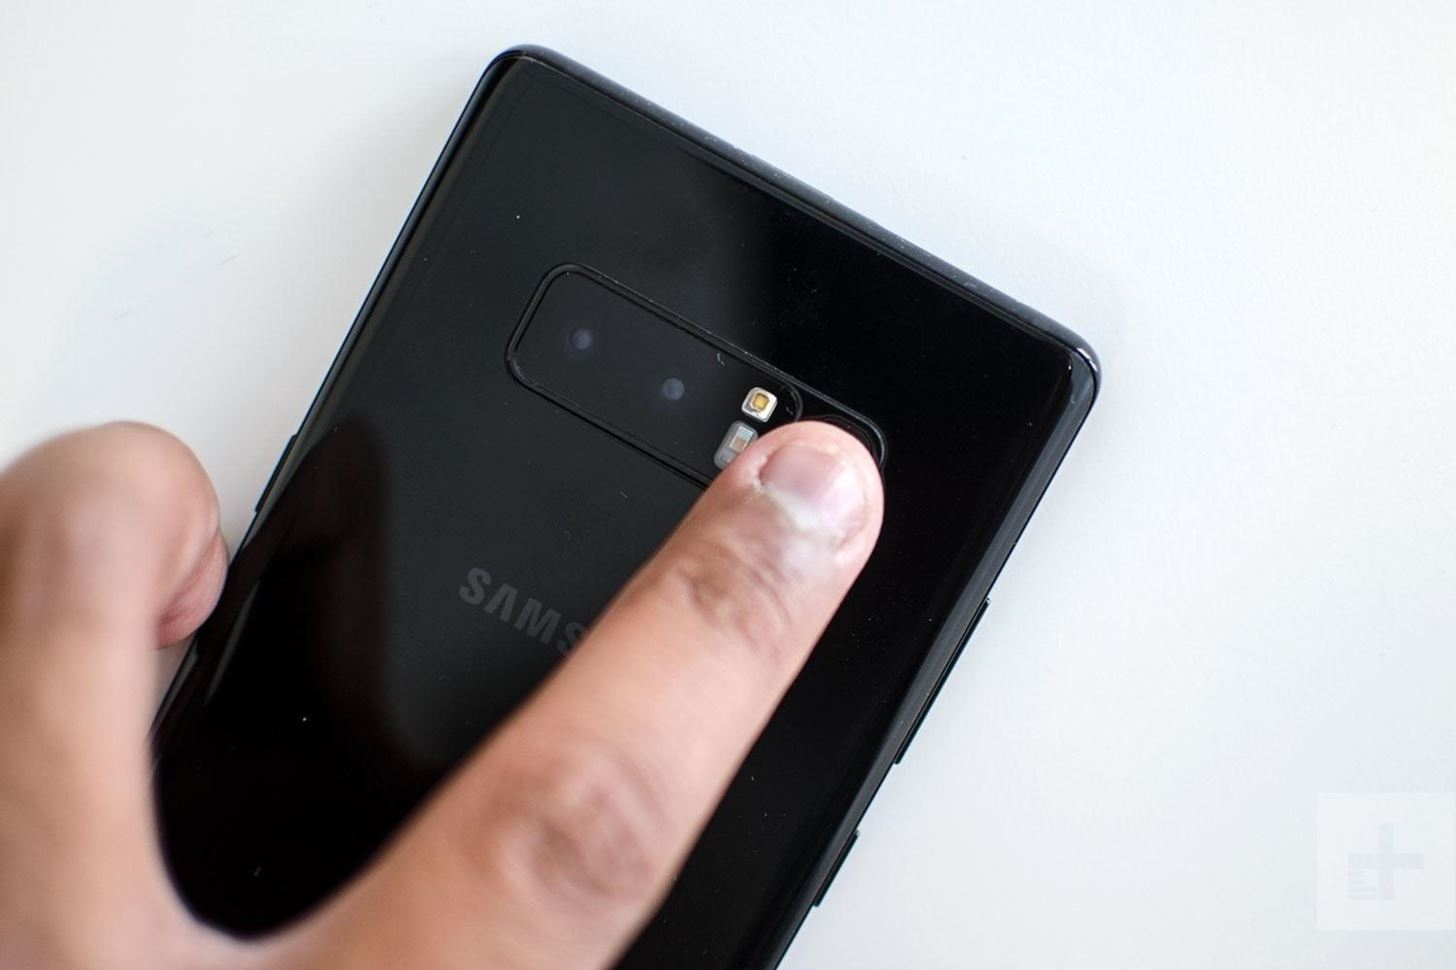 The Latest News, Leaks & Rumors on Samsung's Upcoming Galaxy Note 9